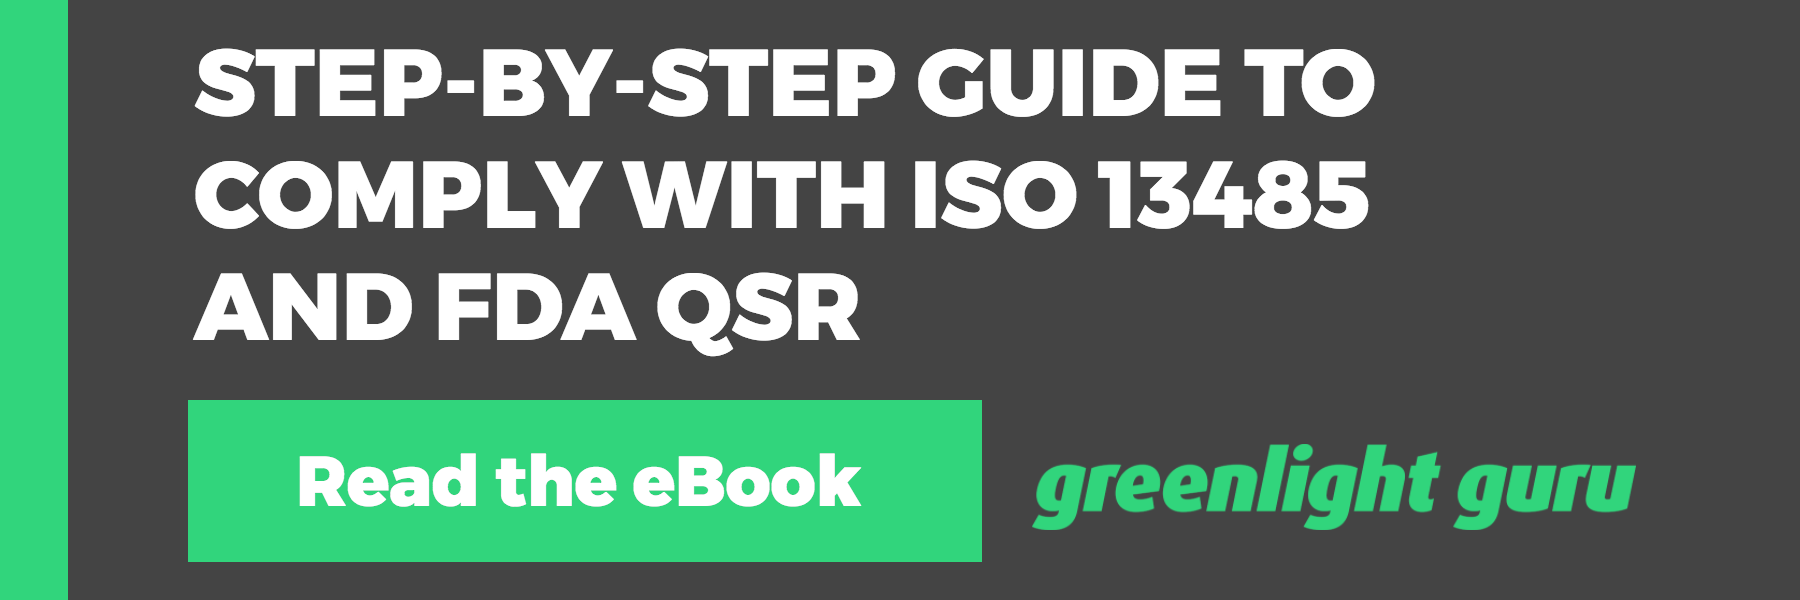 ISO 13485 and FDA QSR: A Step-by-Step Guide to Complying with Medical Device QMS Requirements - Featured Image